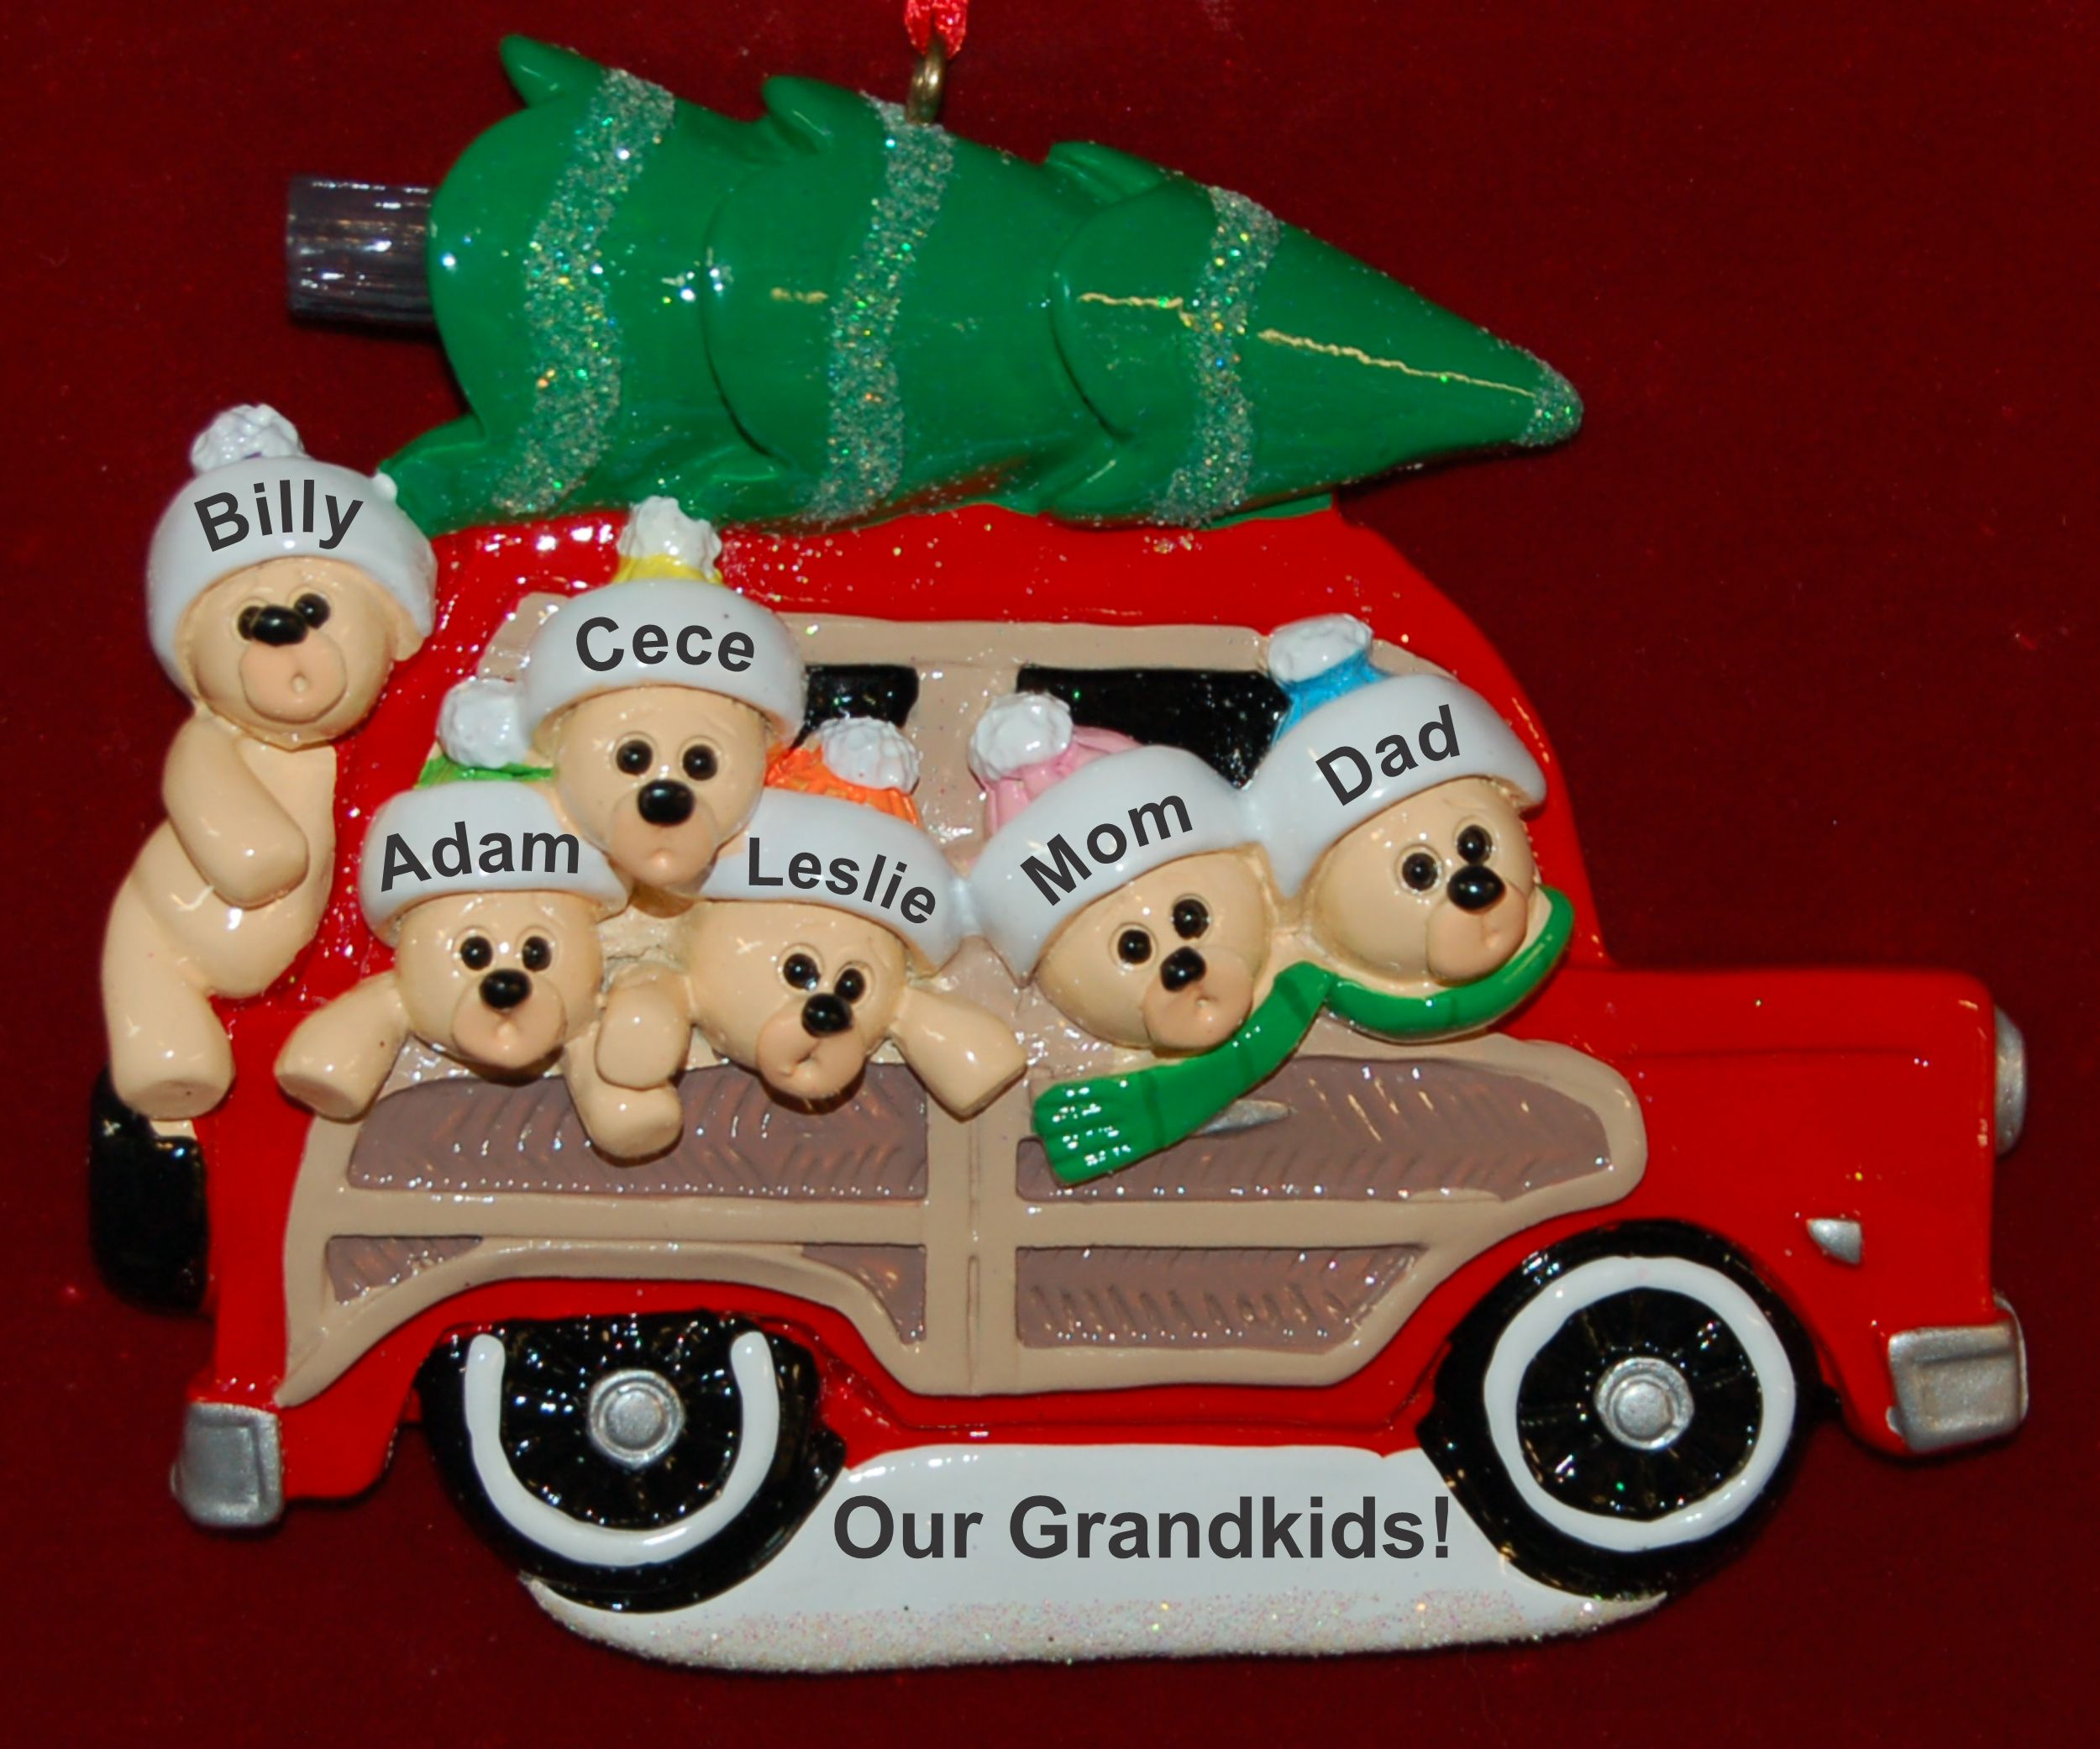 Personalized Grandparents Christmas Ornament Woody 6 Grandkids by Russell Rhodes